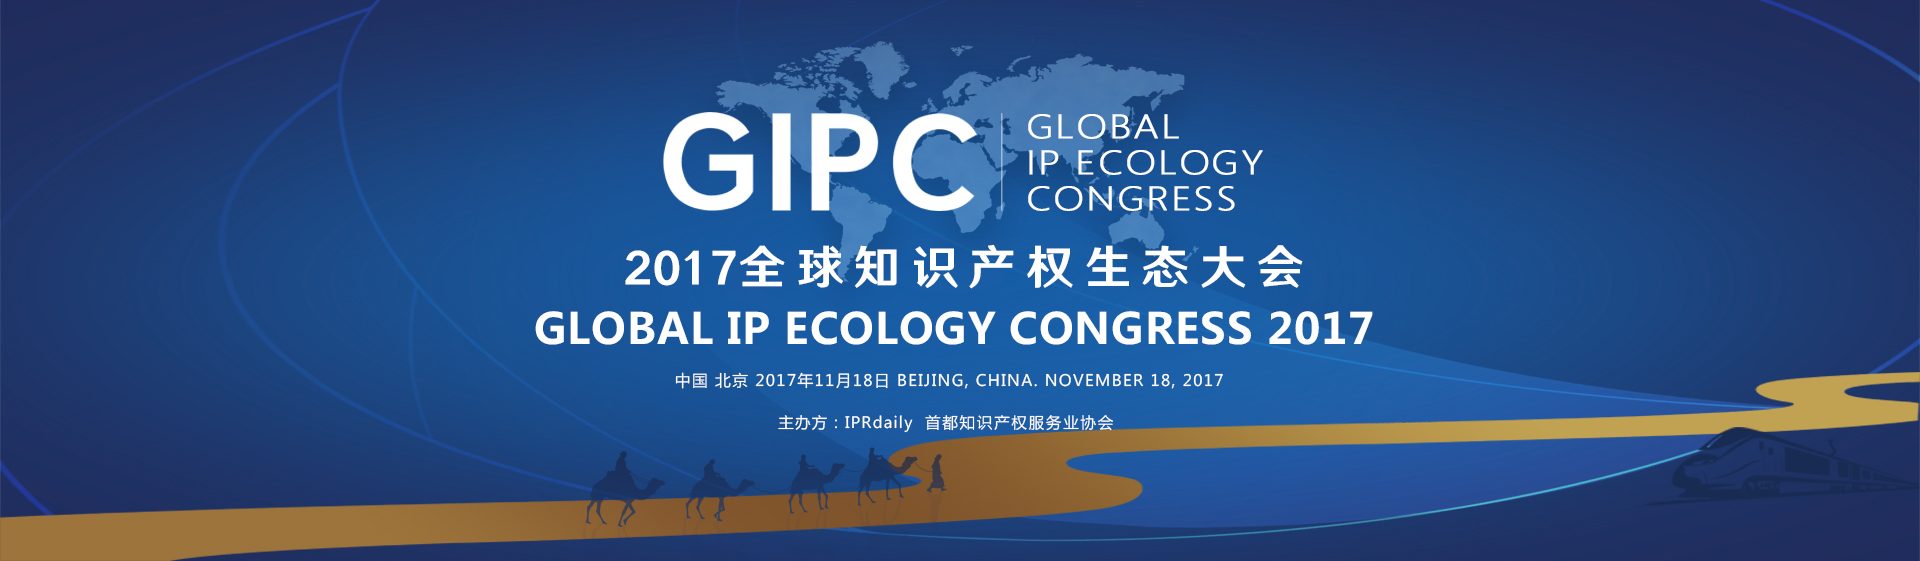 IPR Daily - Global Intellectual Property Ecology Congress - IP opportunities and challenges in Europe under the One Belt, One Road initiative